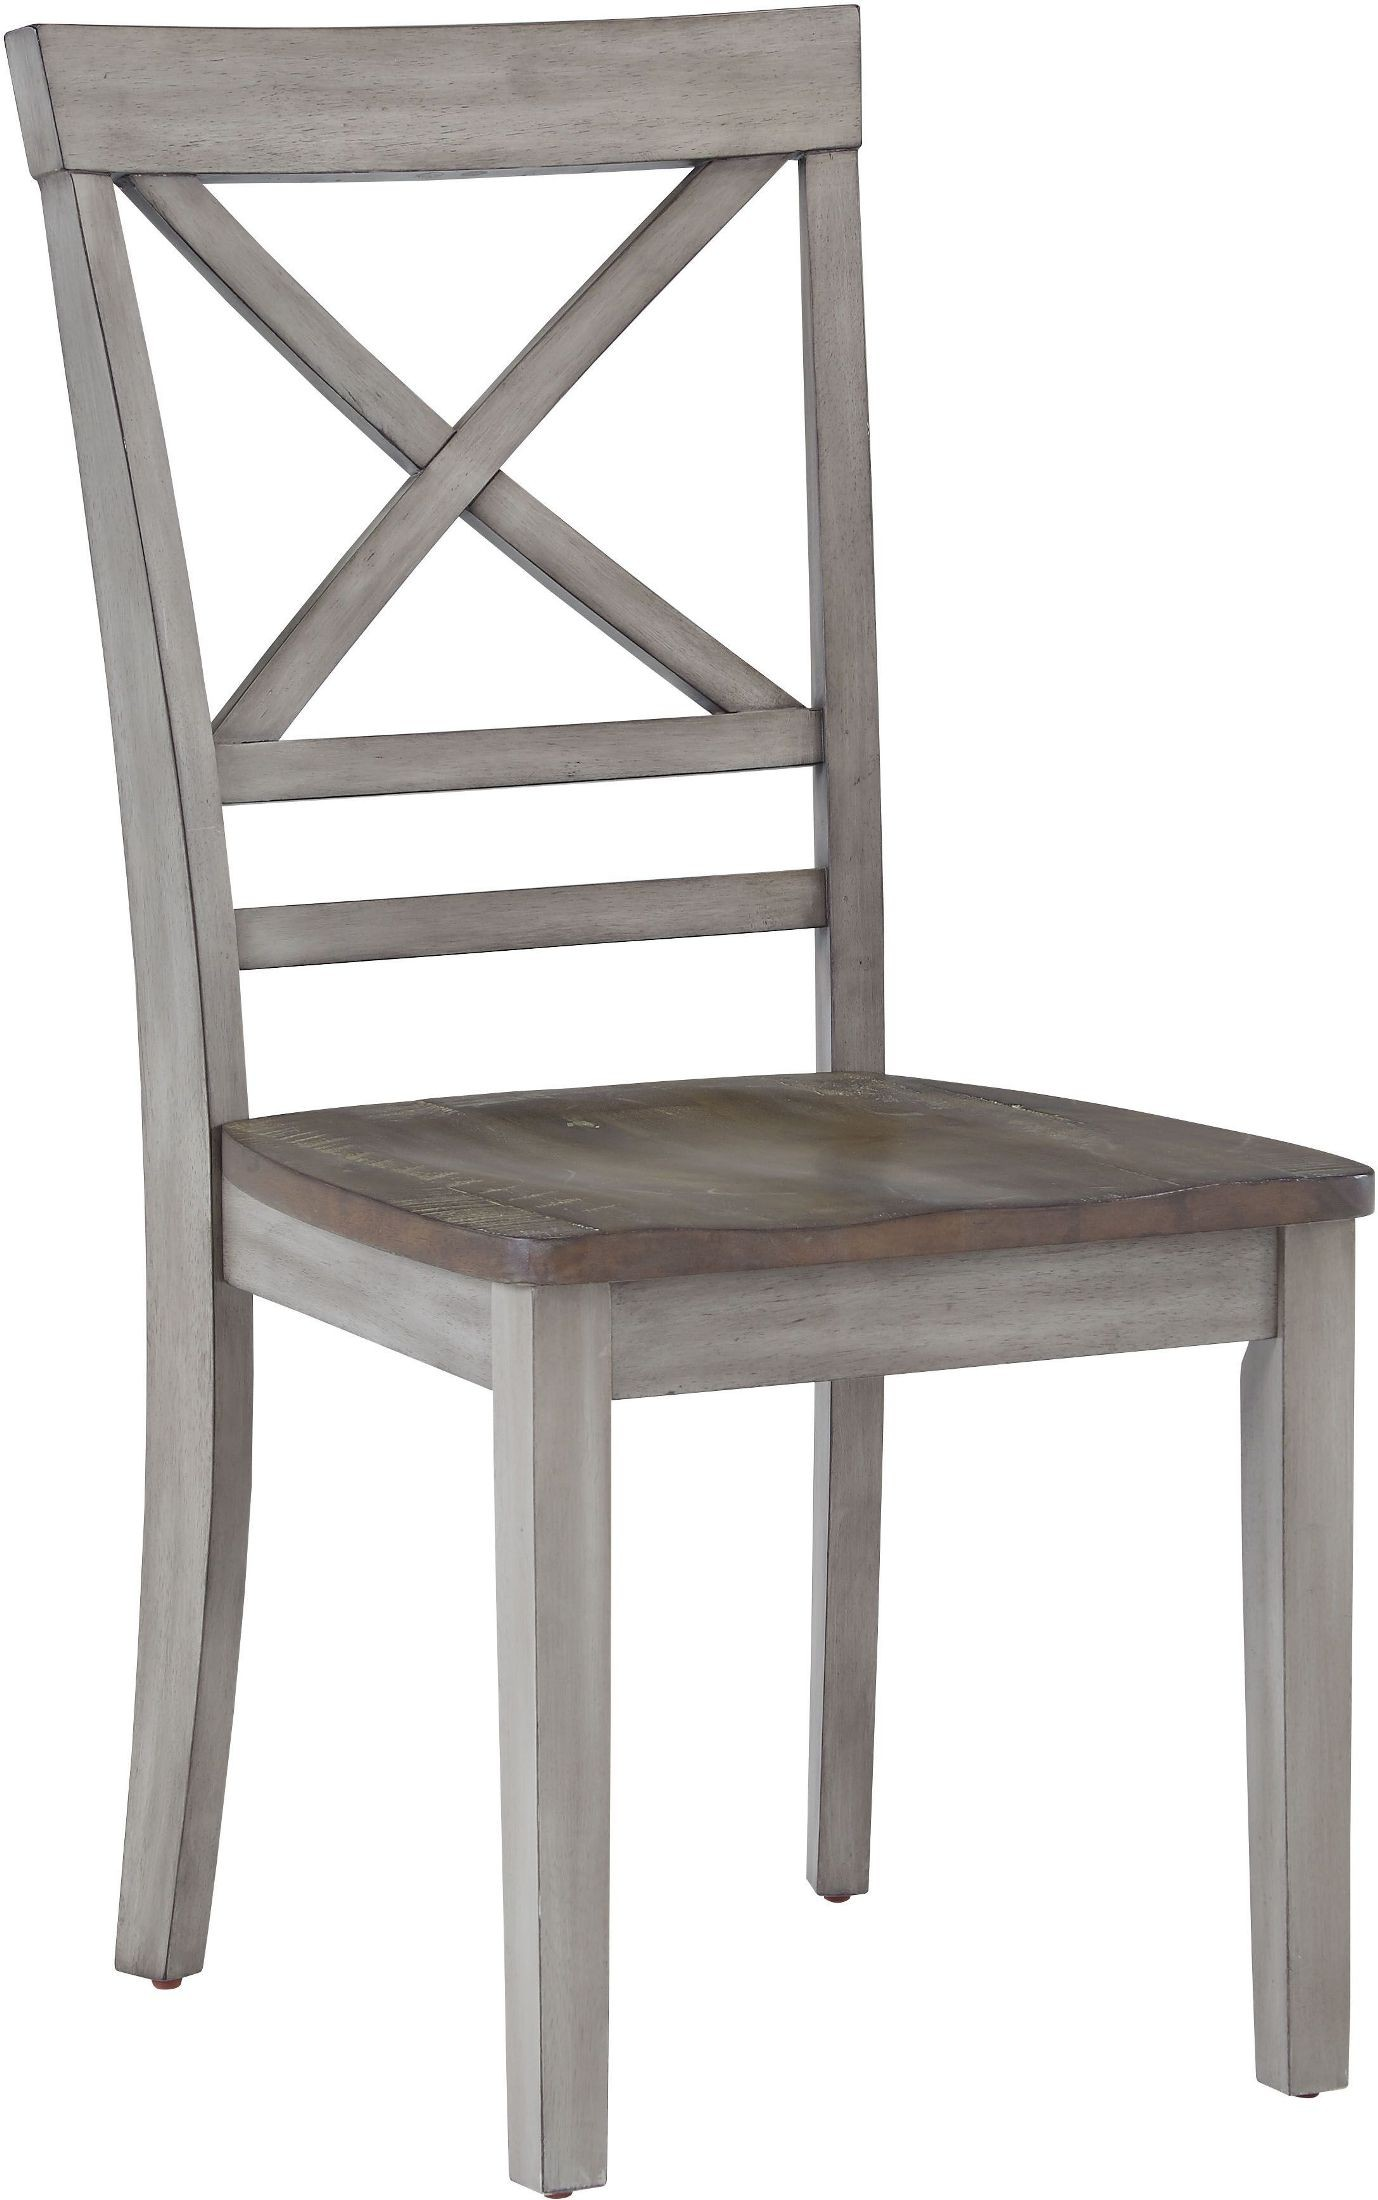 dd23108db81c Fairhaven Rustic Grey Dining Table Set from Standard Furniture   Coleman  Furniture